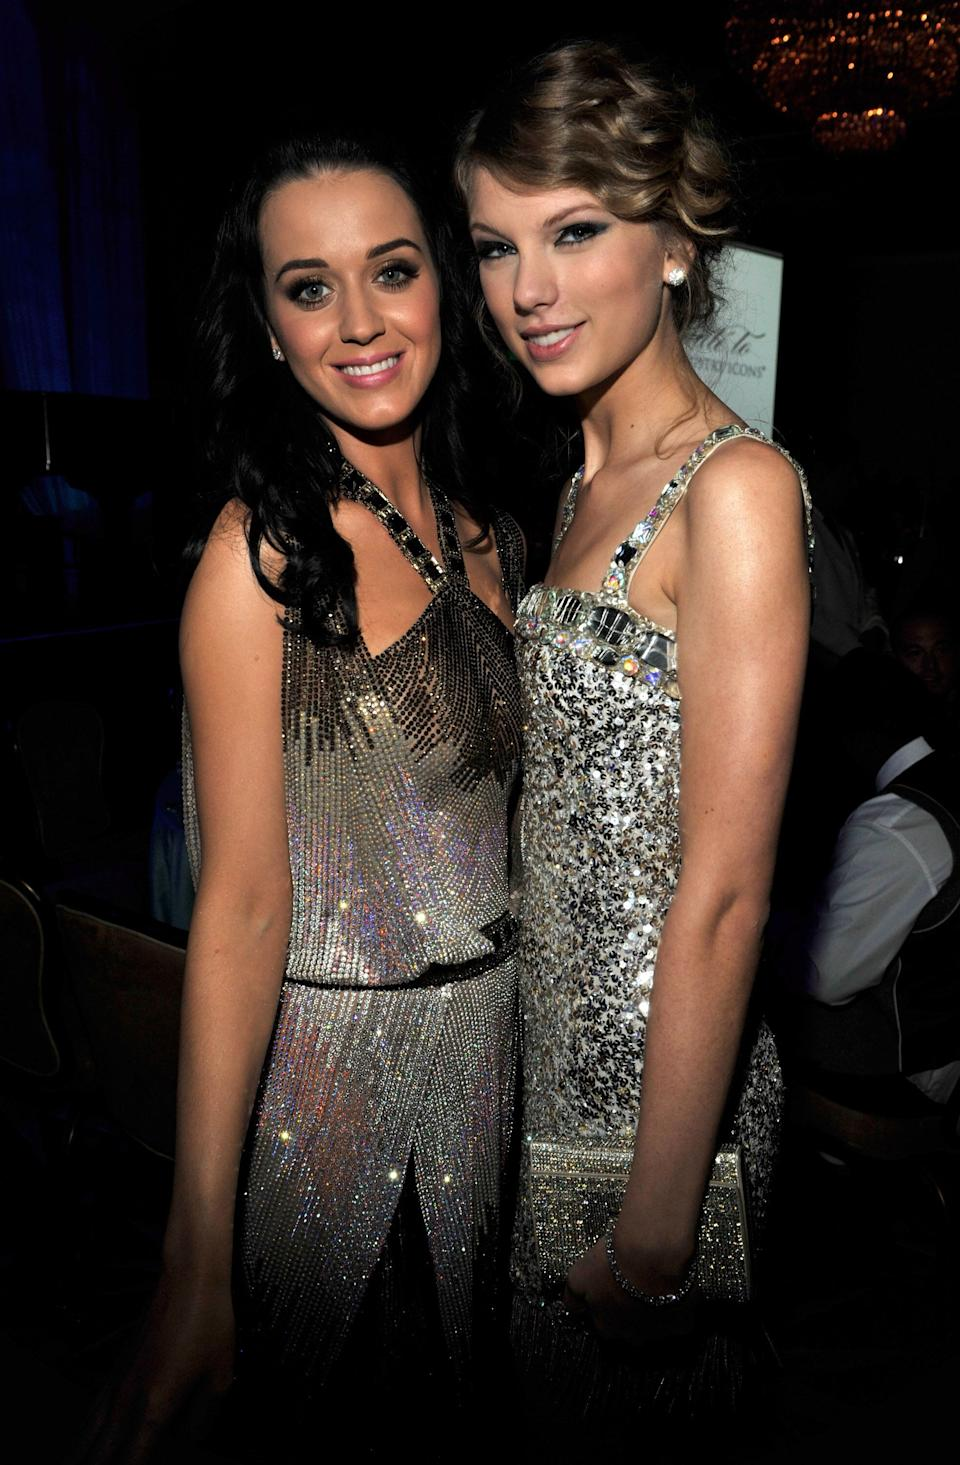 Katy Perry and Taylor Swift (Photo: Kevin Mazur via Getty Images)